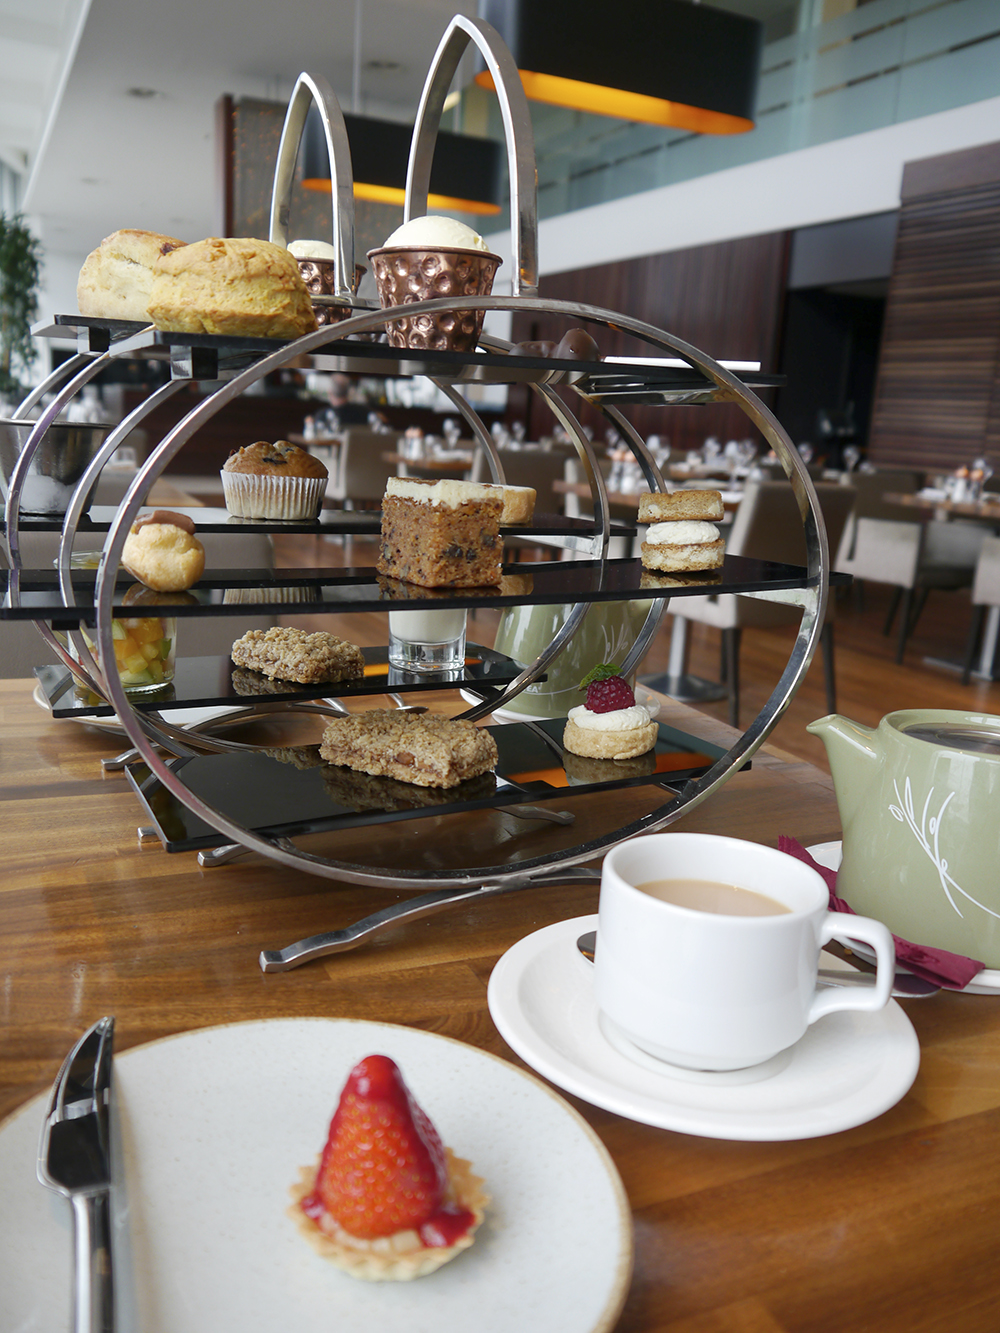 Gluten free and vegetarian afternoon tea at Apex Hotels dundee